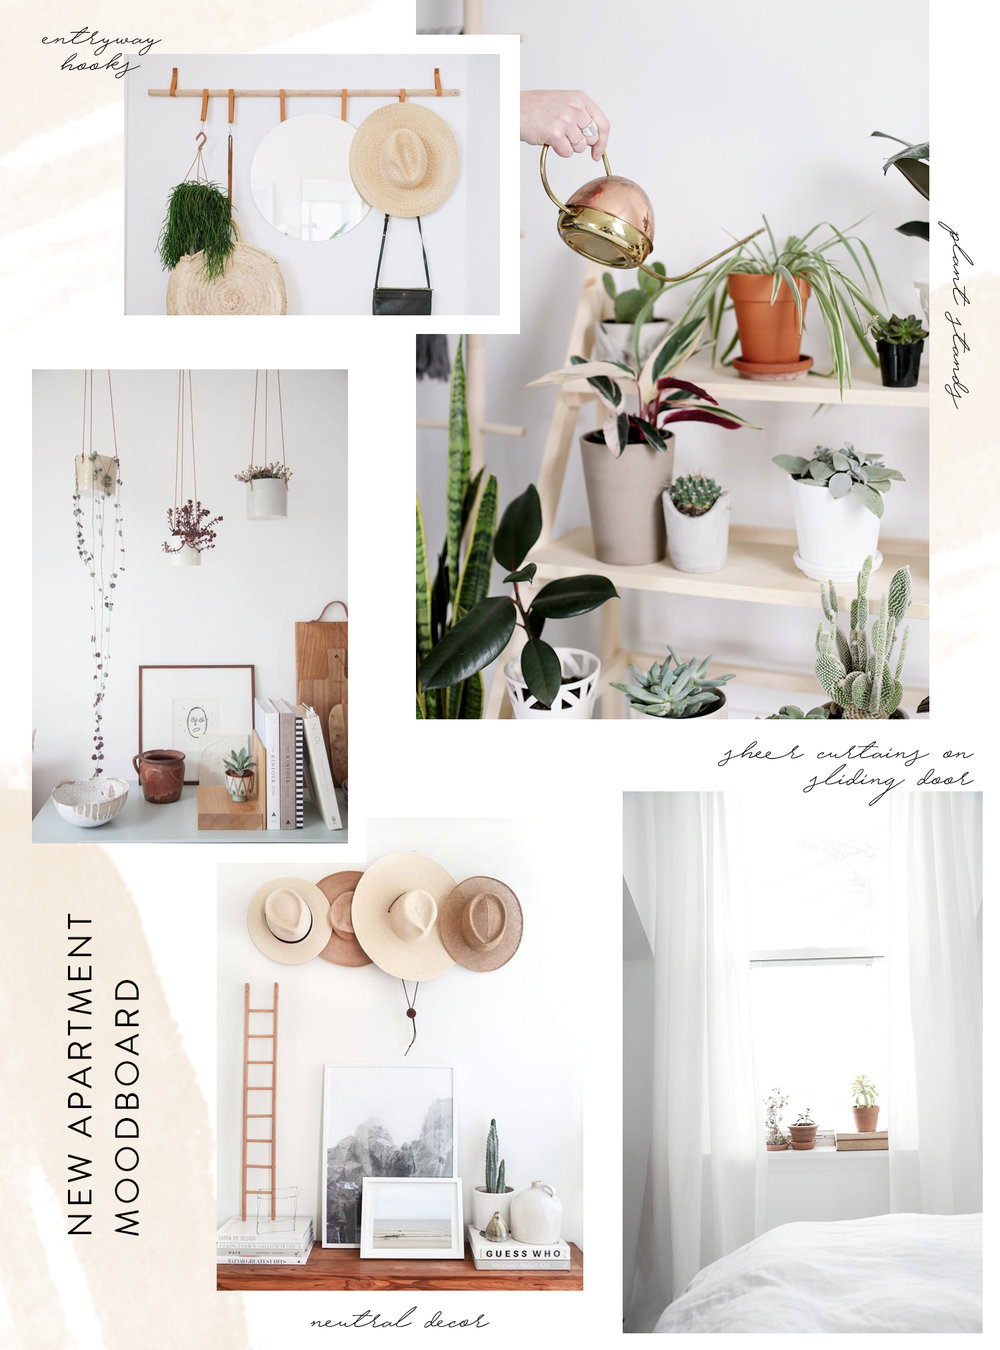 boho, neutral apartment decor moodboard | Reux Design Co.